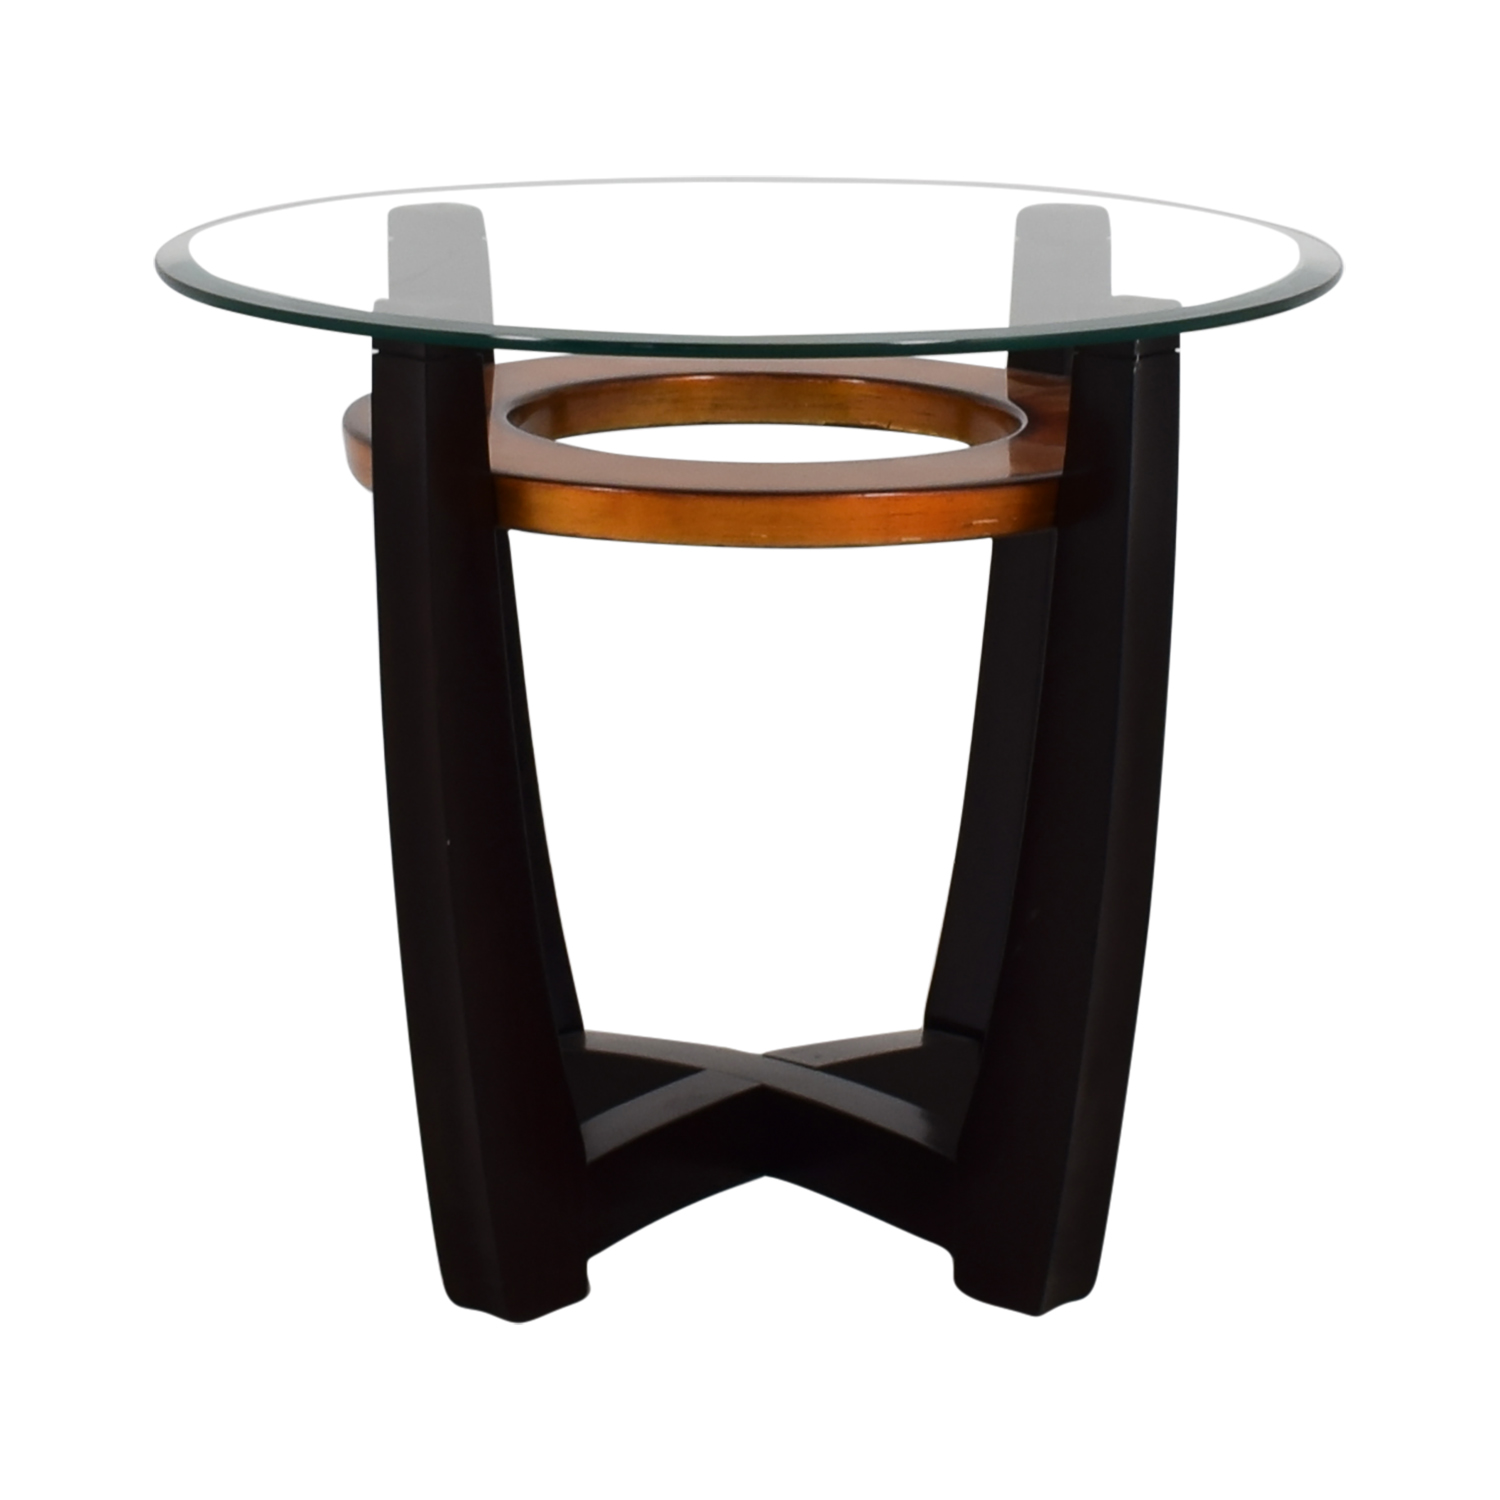 Raymour & Flanigan Raymour & Flanigan Round Glass Top and Wood End Table